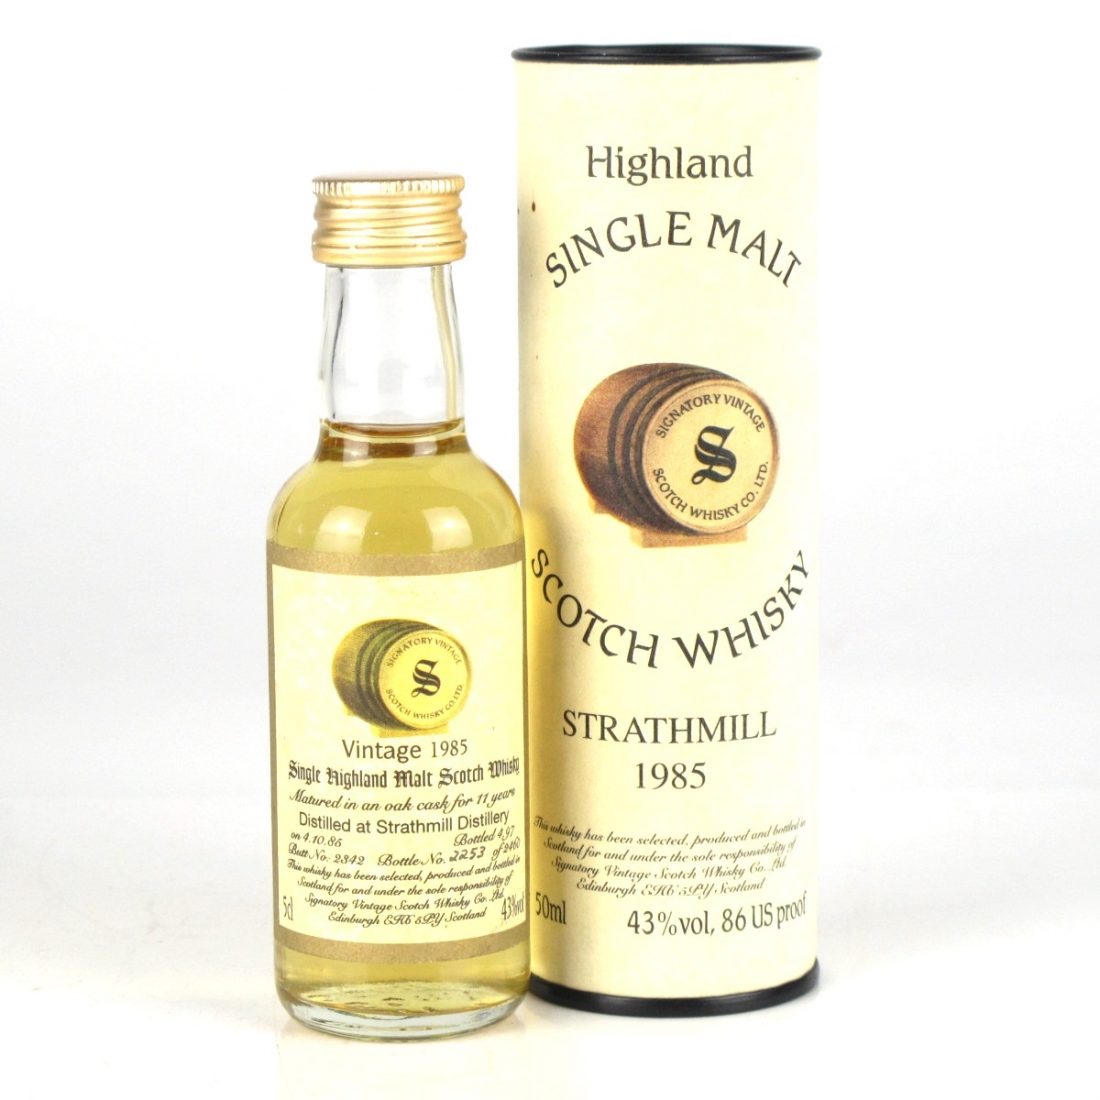 Strathmill 1985 Signatory Vintage 11 Year Old Miniature 5cl